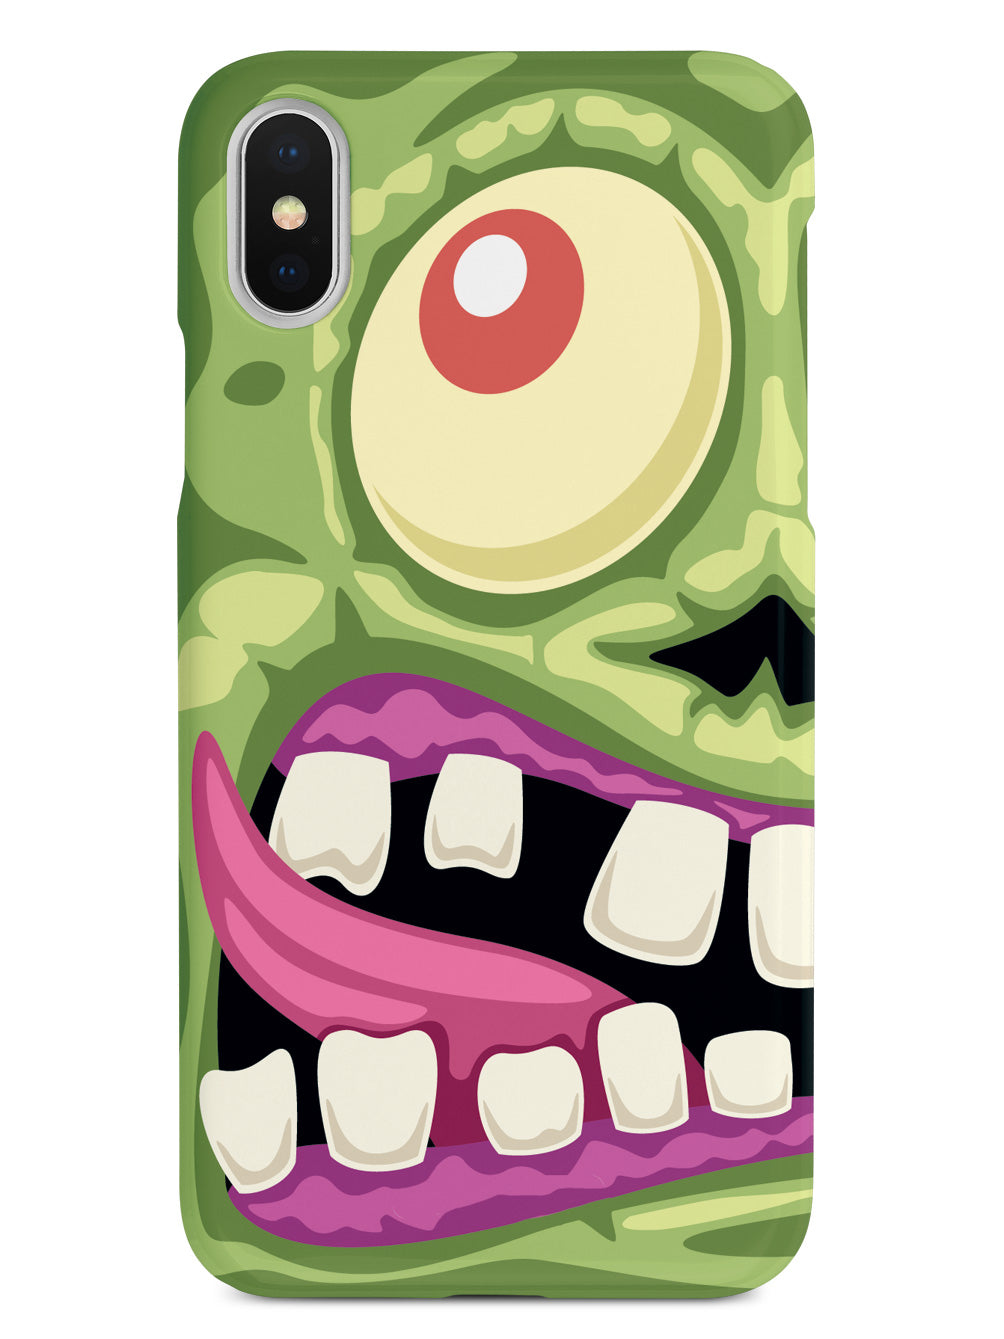 Hungry Zombie Case